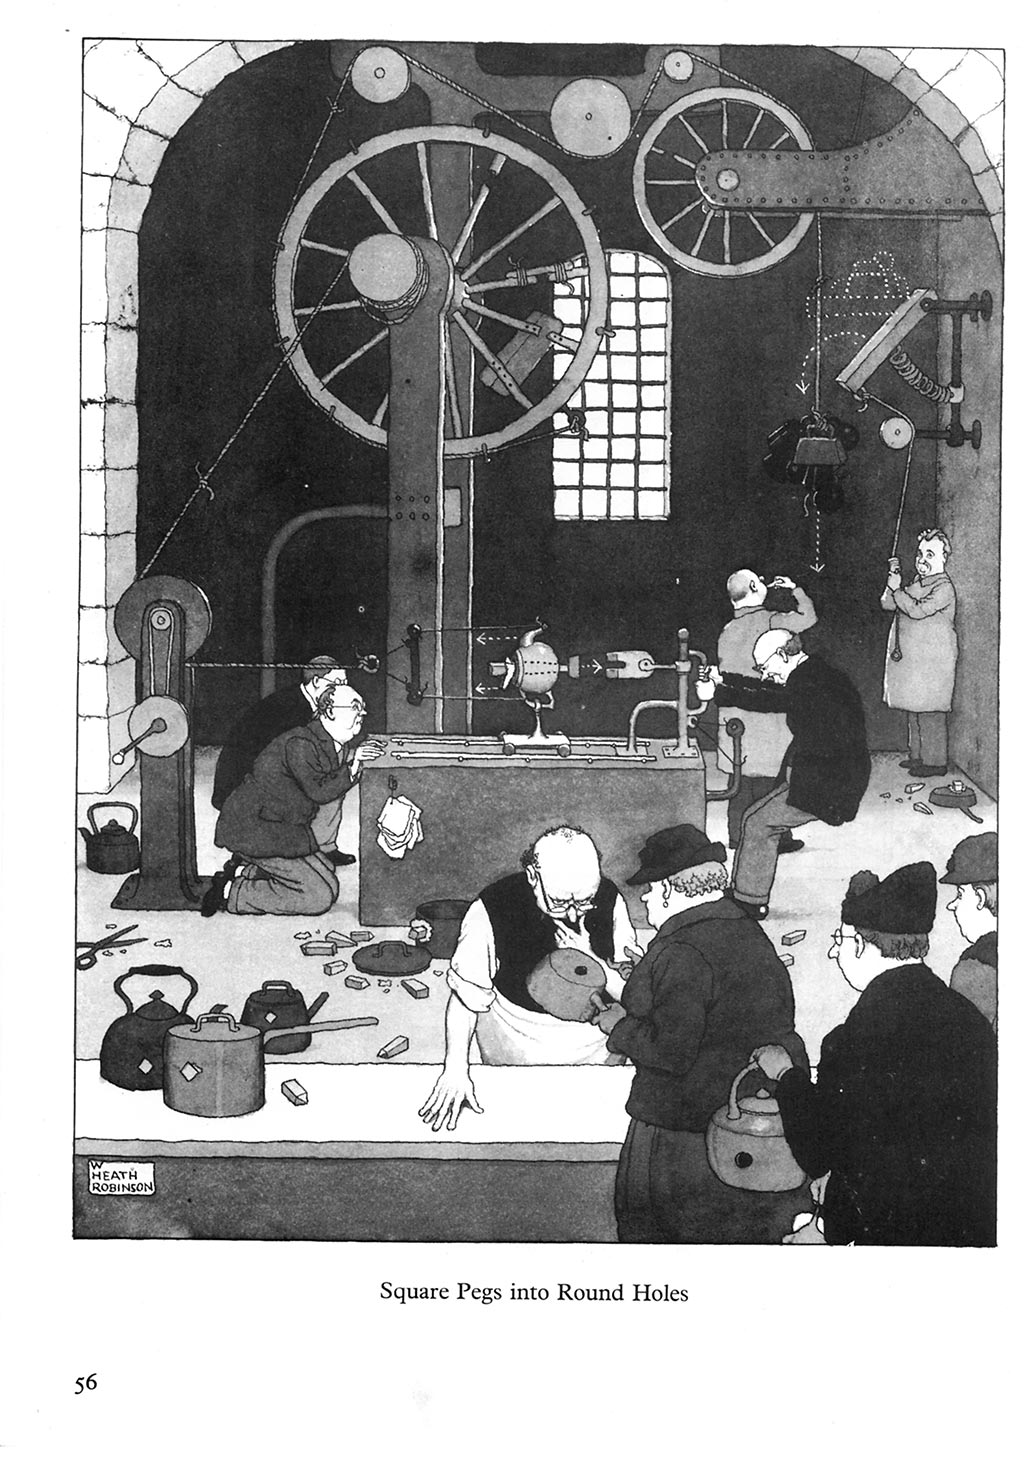 william_heath_robinson_inventions_-_page_056